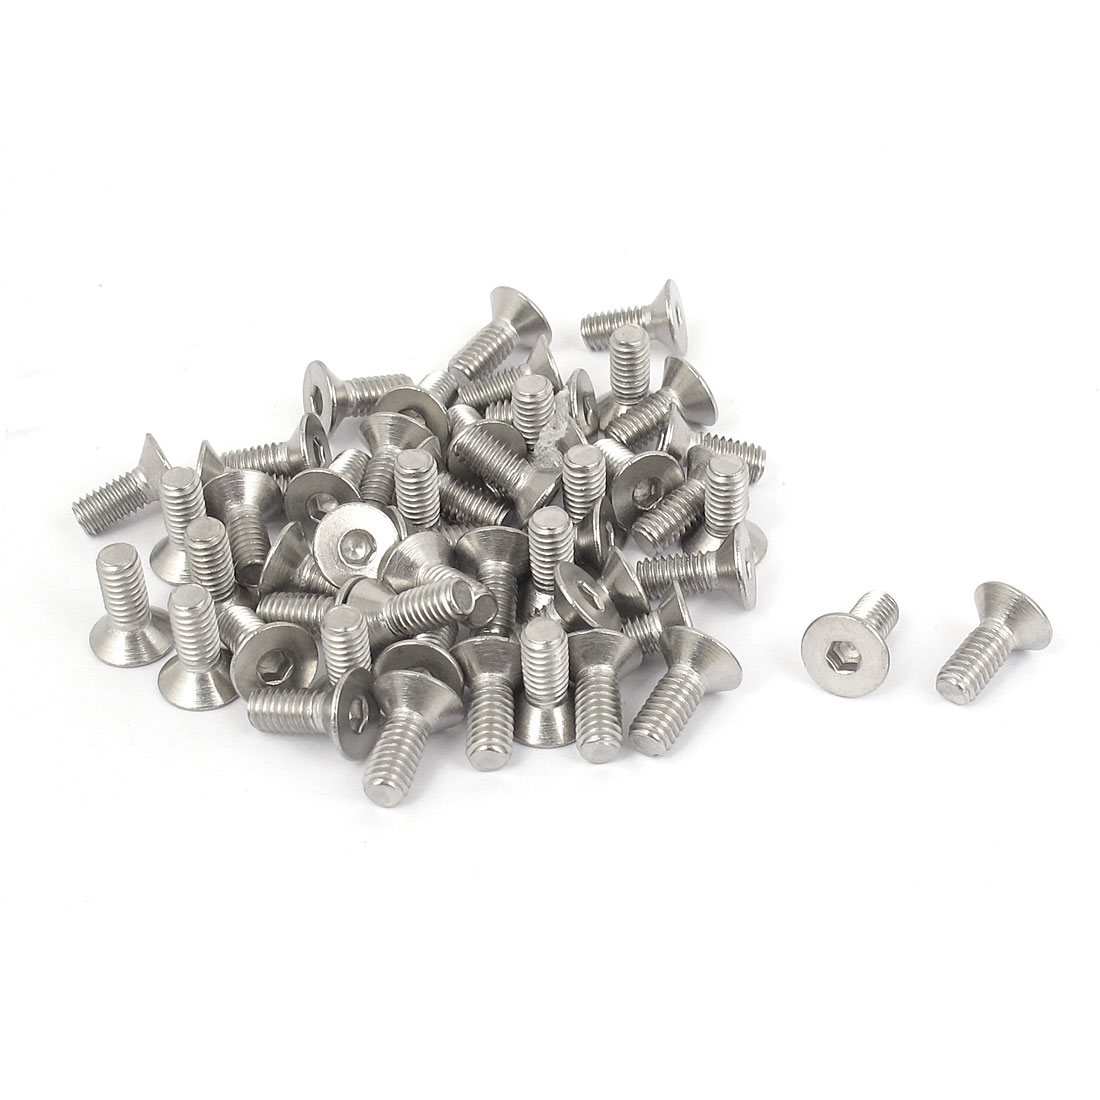 M4 x 10mm Metric 304 Stainless Steel Hex Socket Countersunk Flat Head Screw Bolts 50pcs